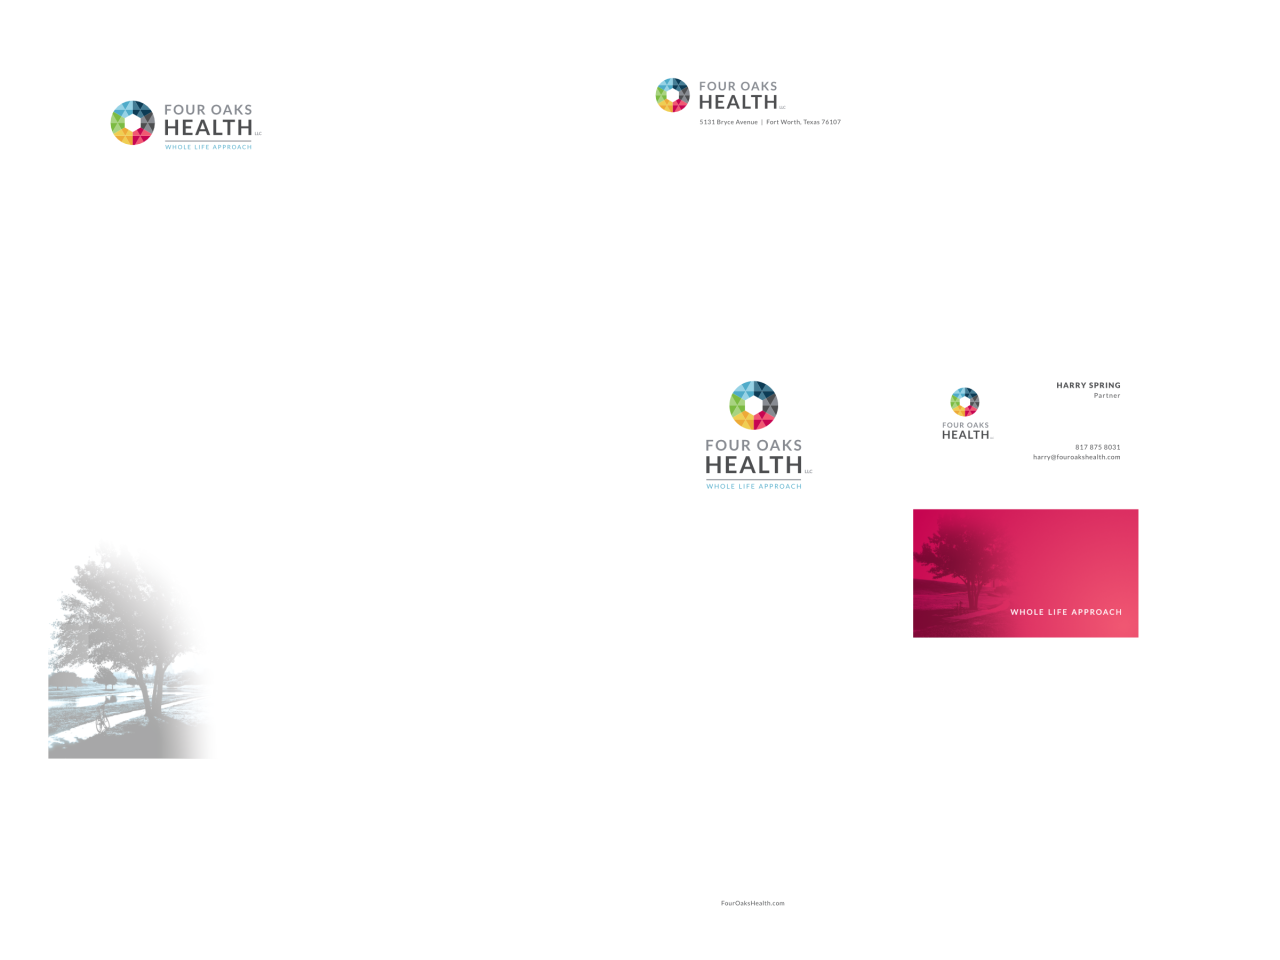 Four Oaks Health Brand B